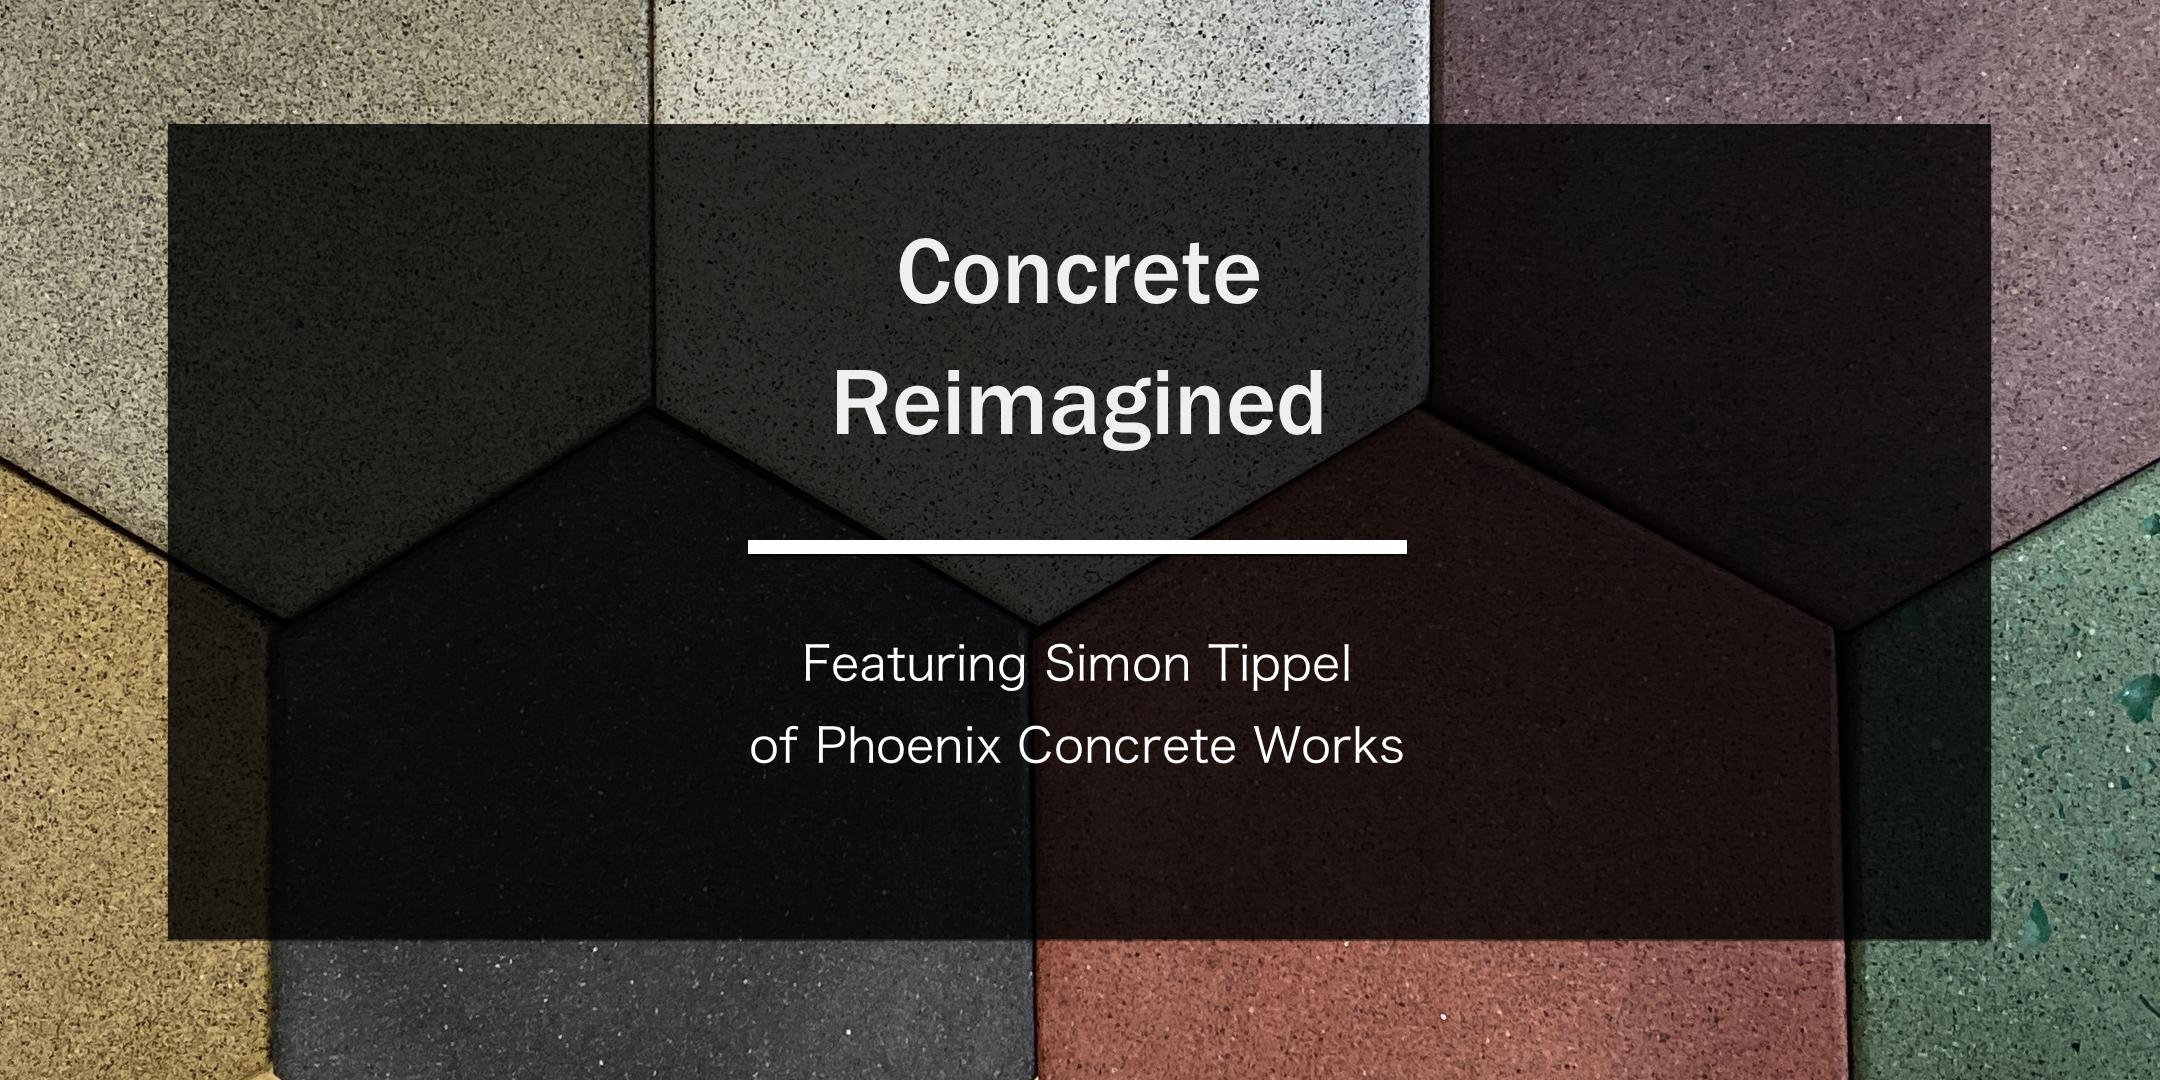 Concrete Reimagined: Featuring Simon Tippel of Phoenix Concrete Works